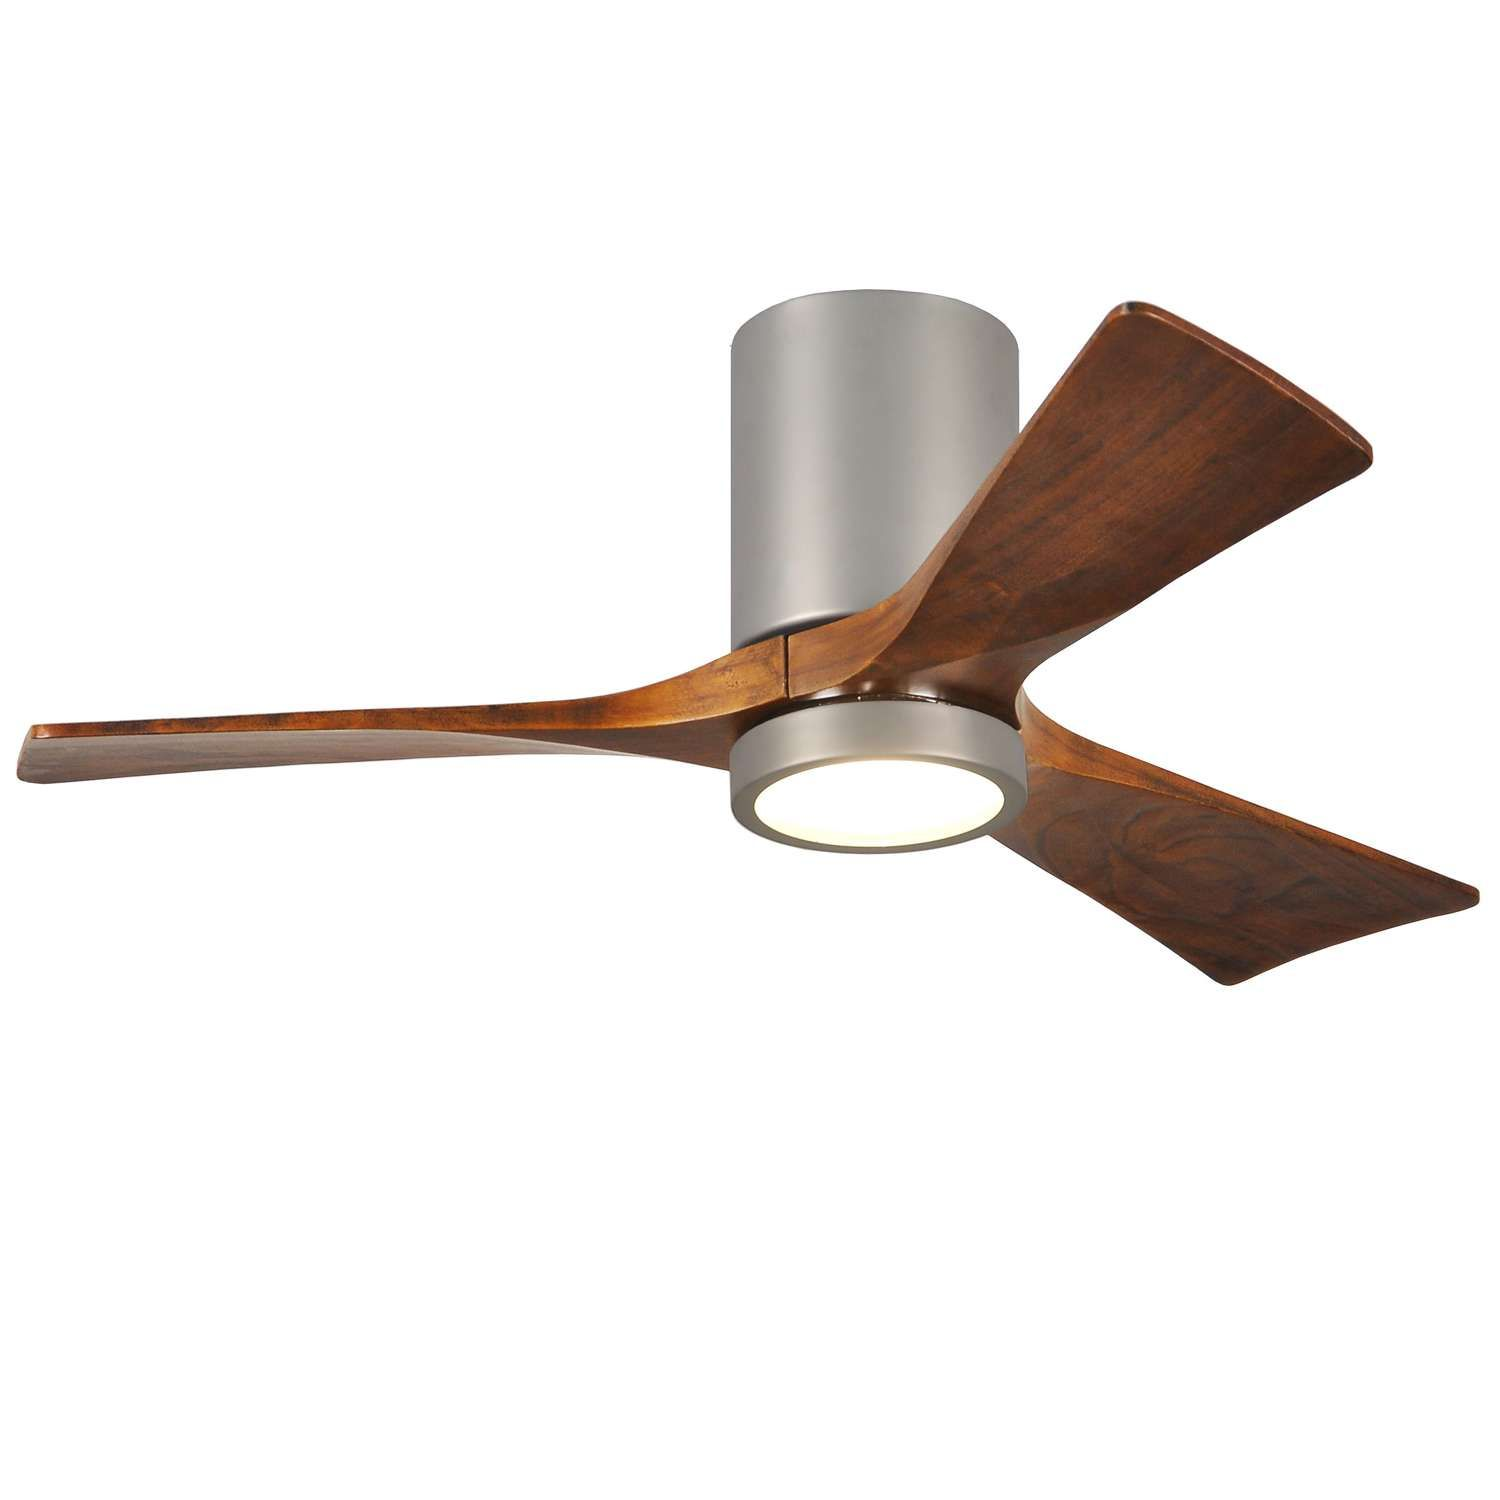 at three gorilla ceilings fan ivory price in cheapest blade ceiling compare india